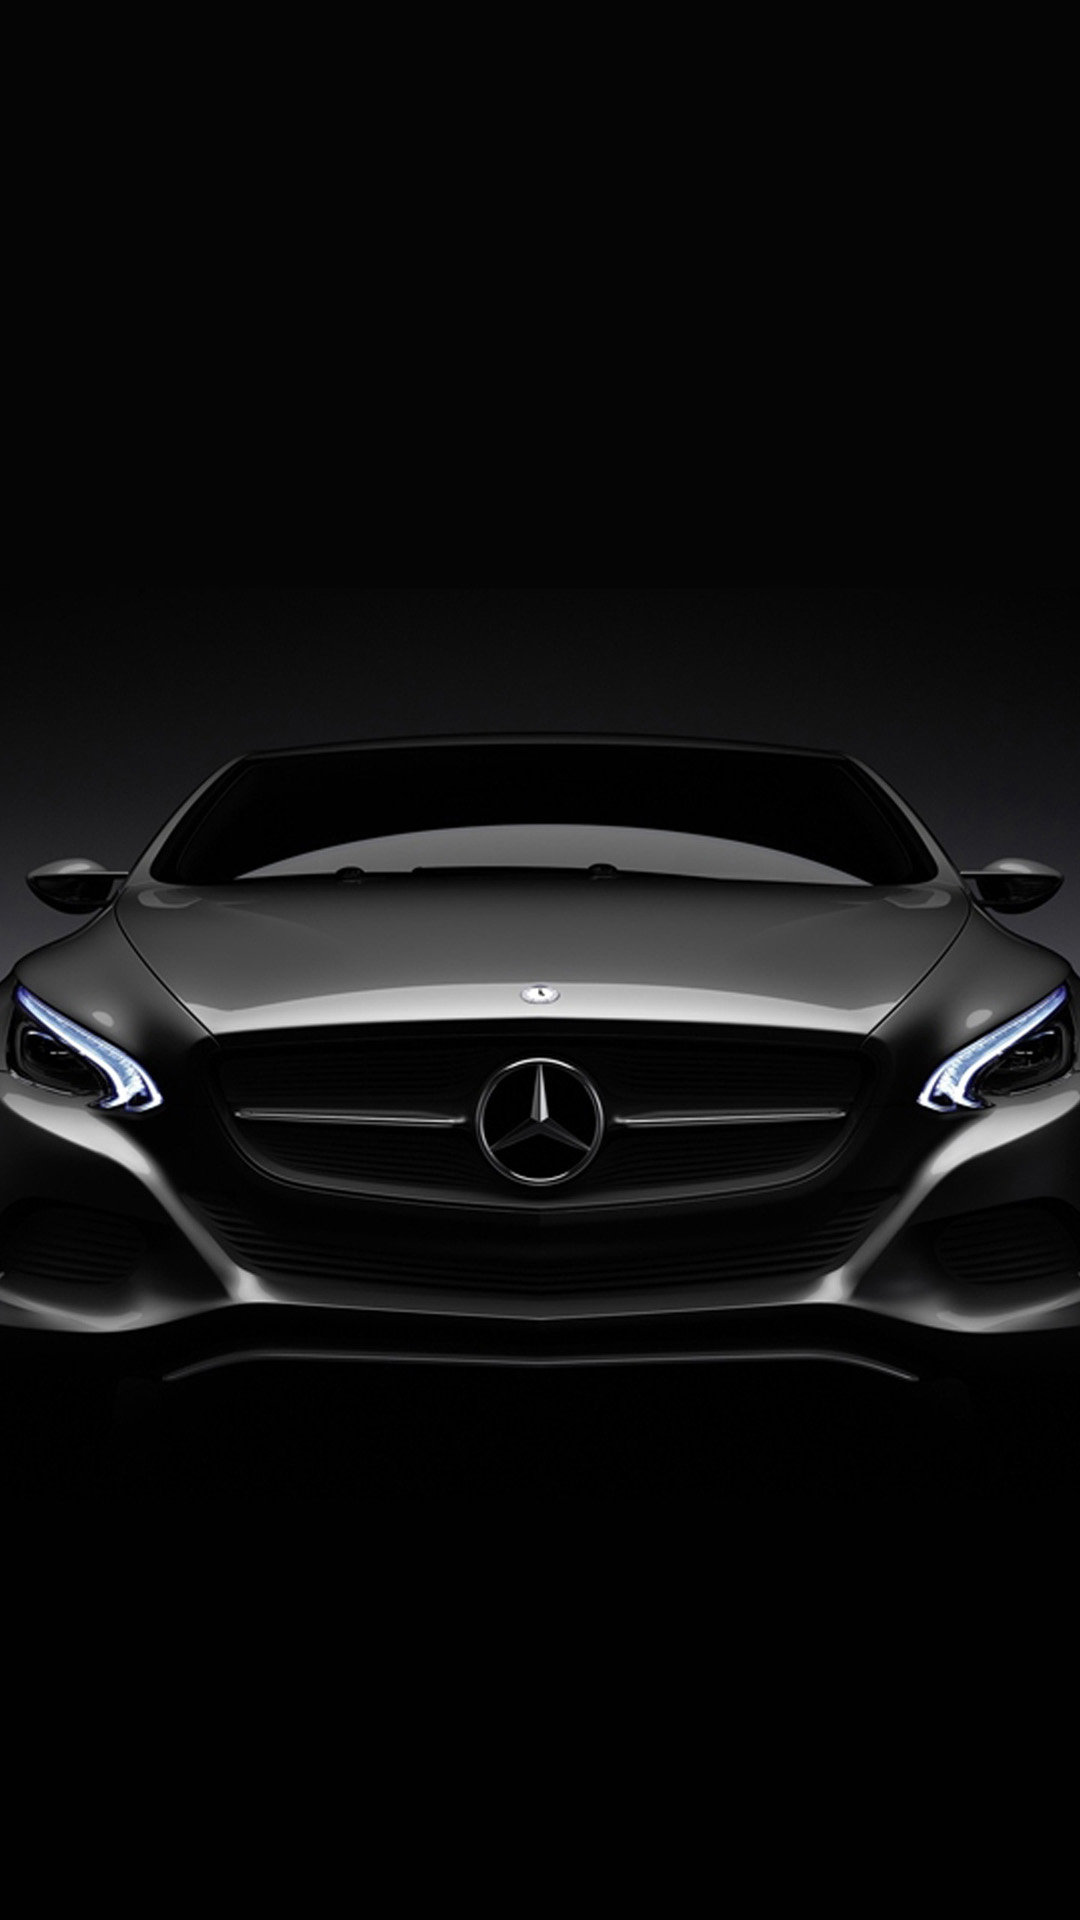 Mercedes benz logo iphone 5 wallpaper wallpaper sportstle for Www mercedes benz mobile com iphone